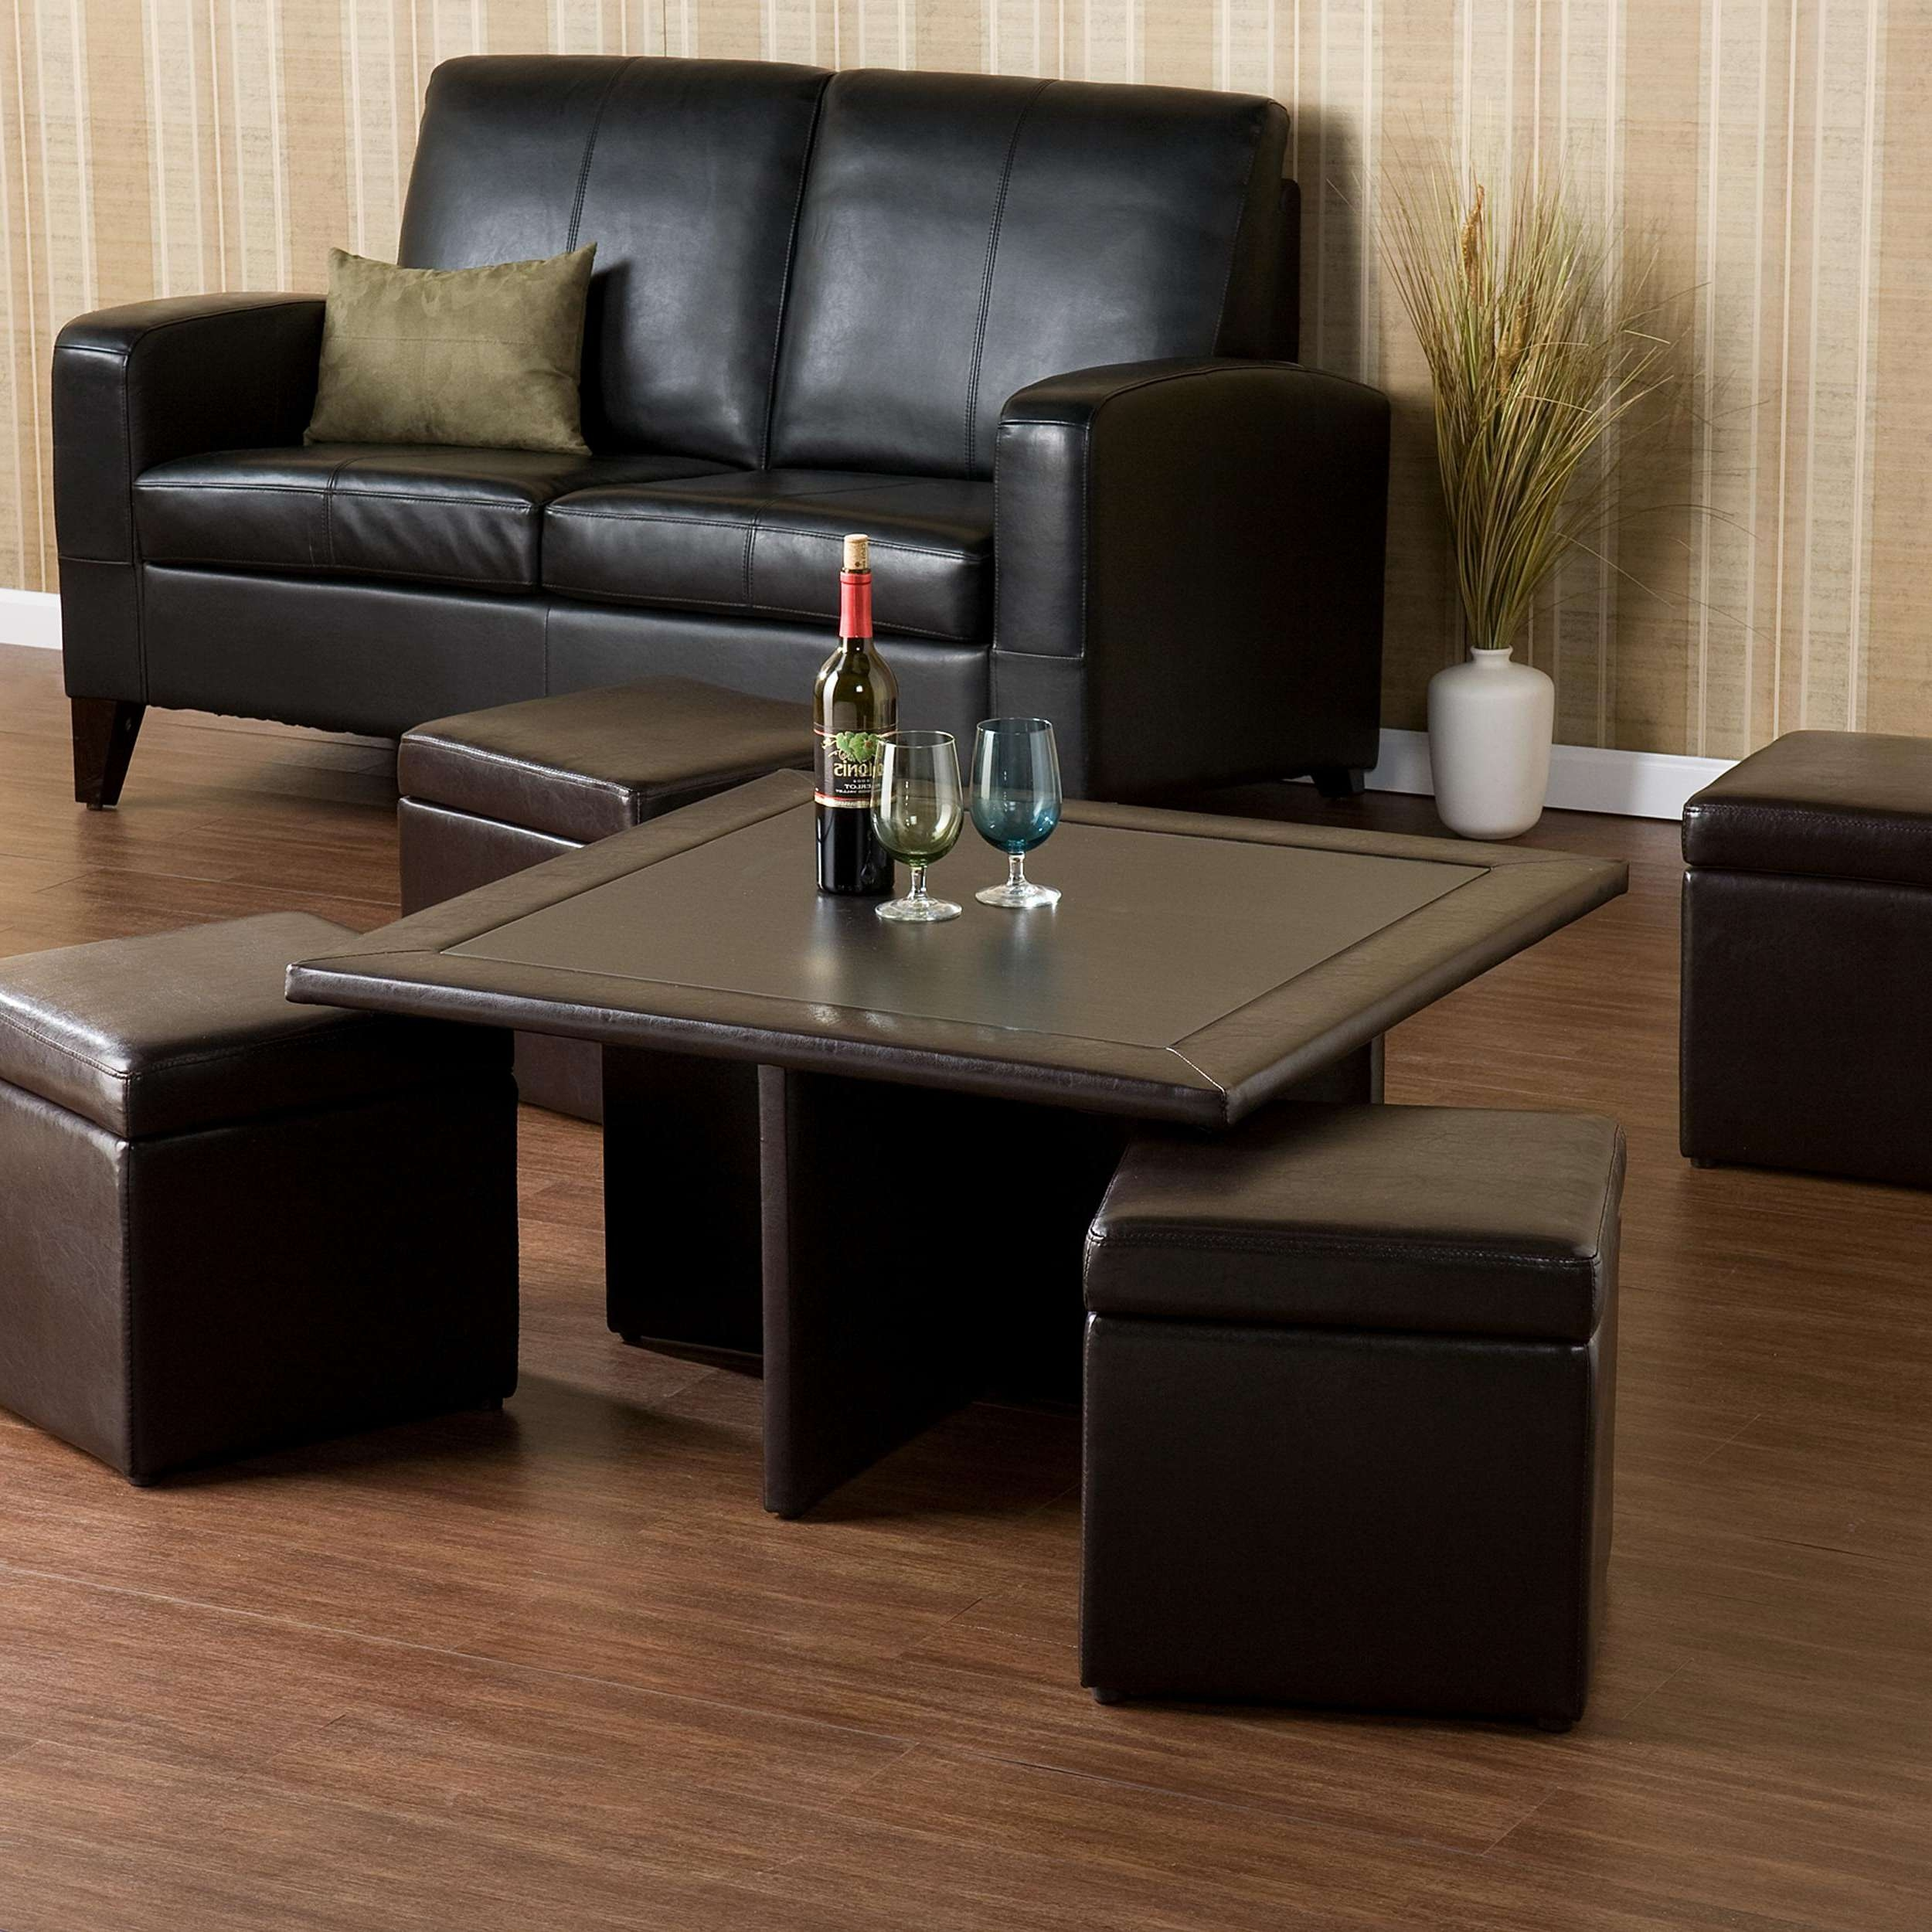 Most Up To Date Square Coffee Tables With Storage Cubes Within Coffee Tables : Square Storage Ottoman Coffee Table With Ottomans (View 10 of 20)